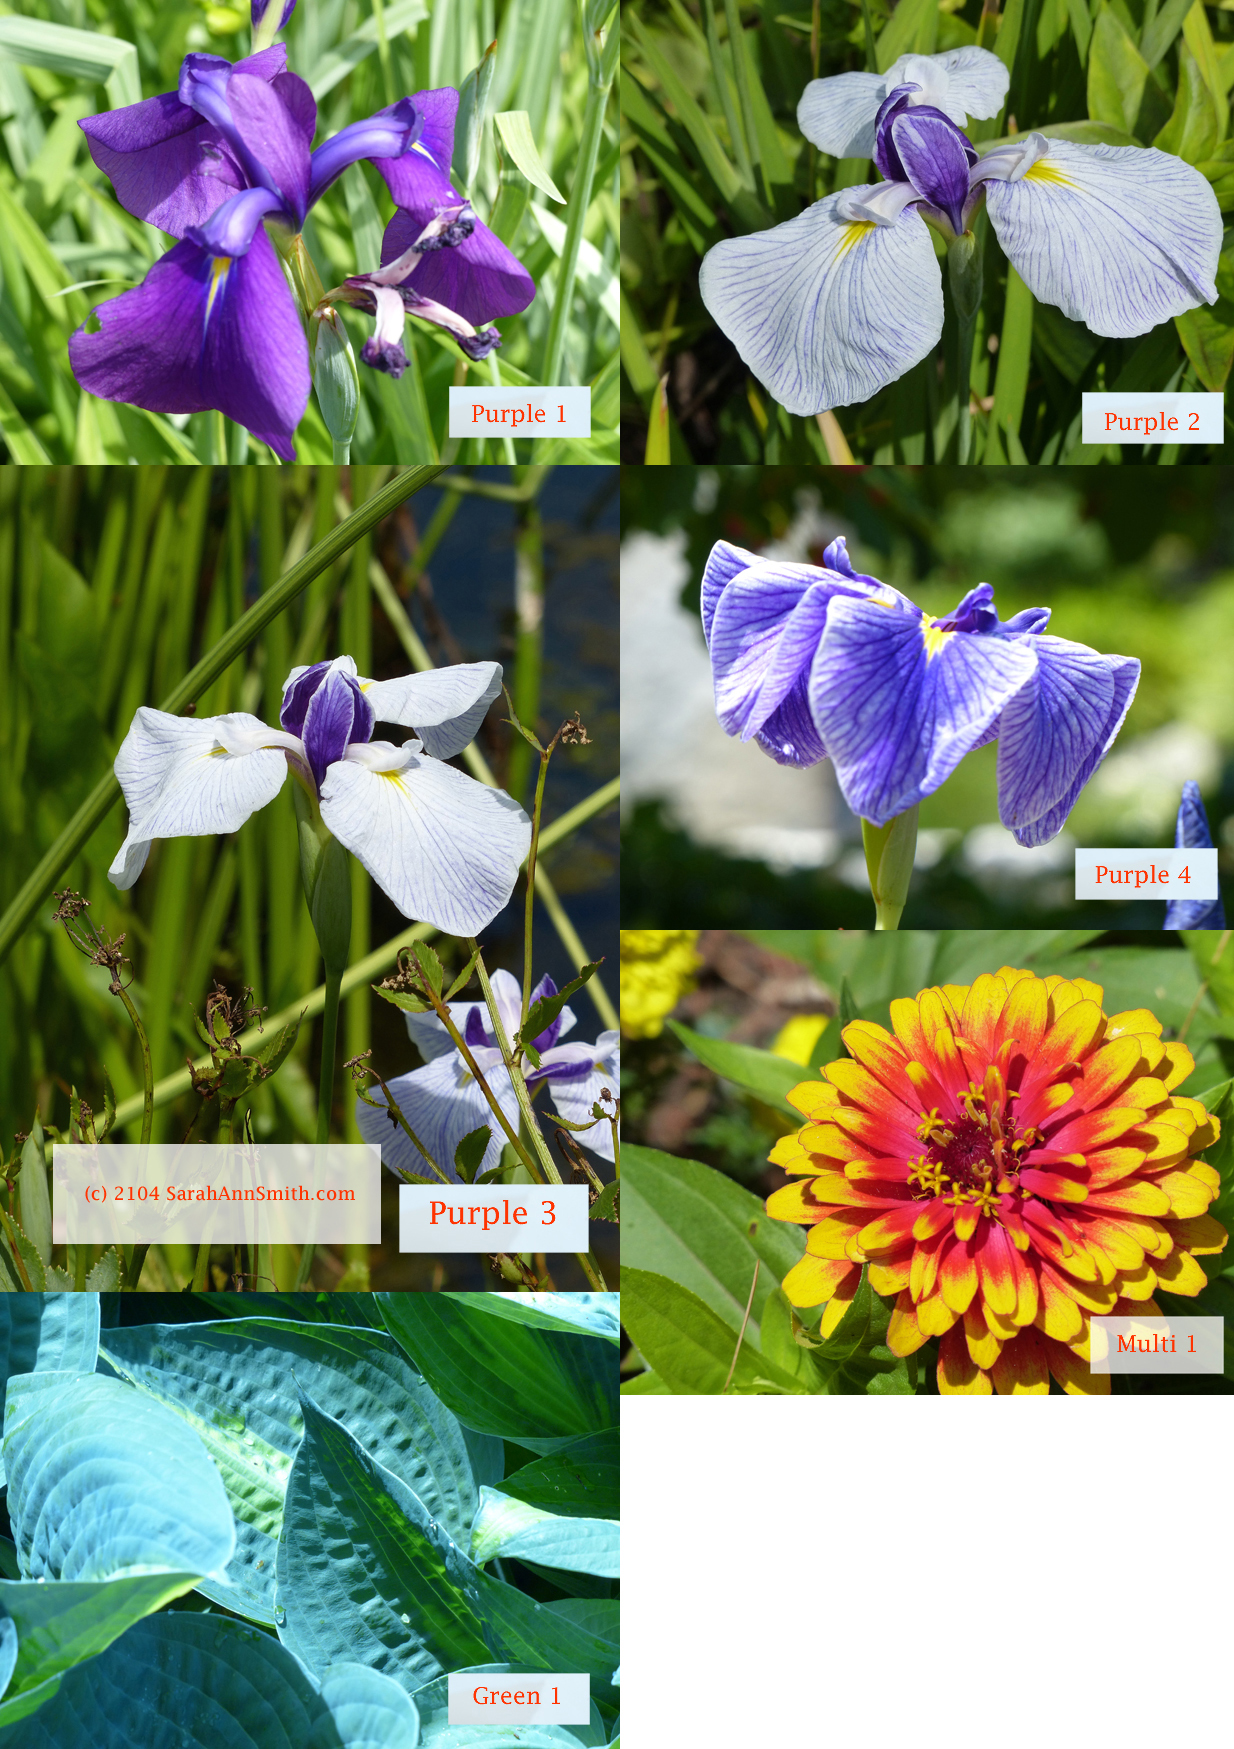 Purple, Multi and Green images